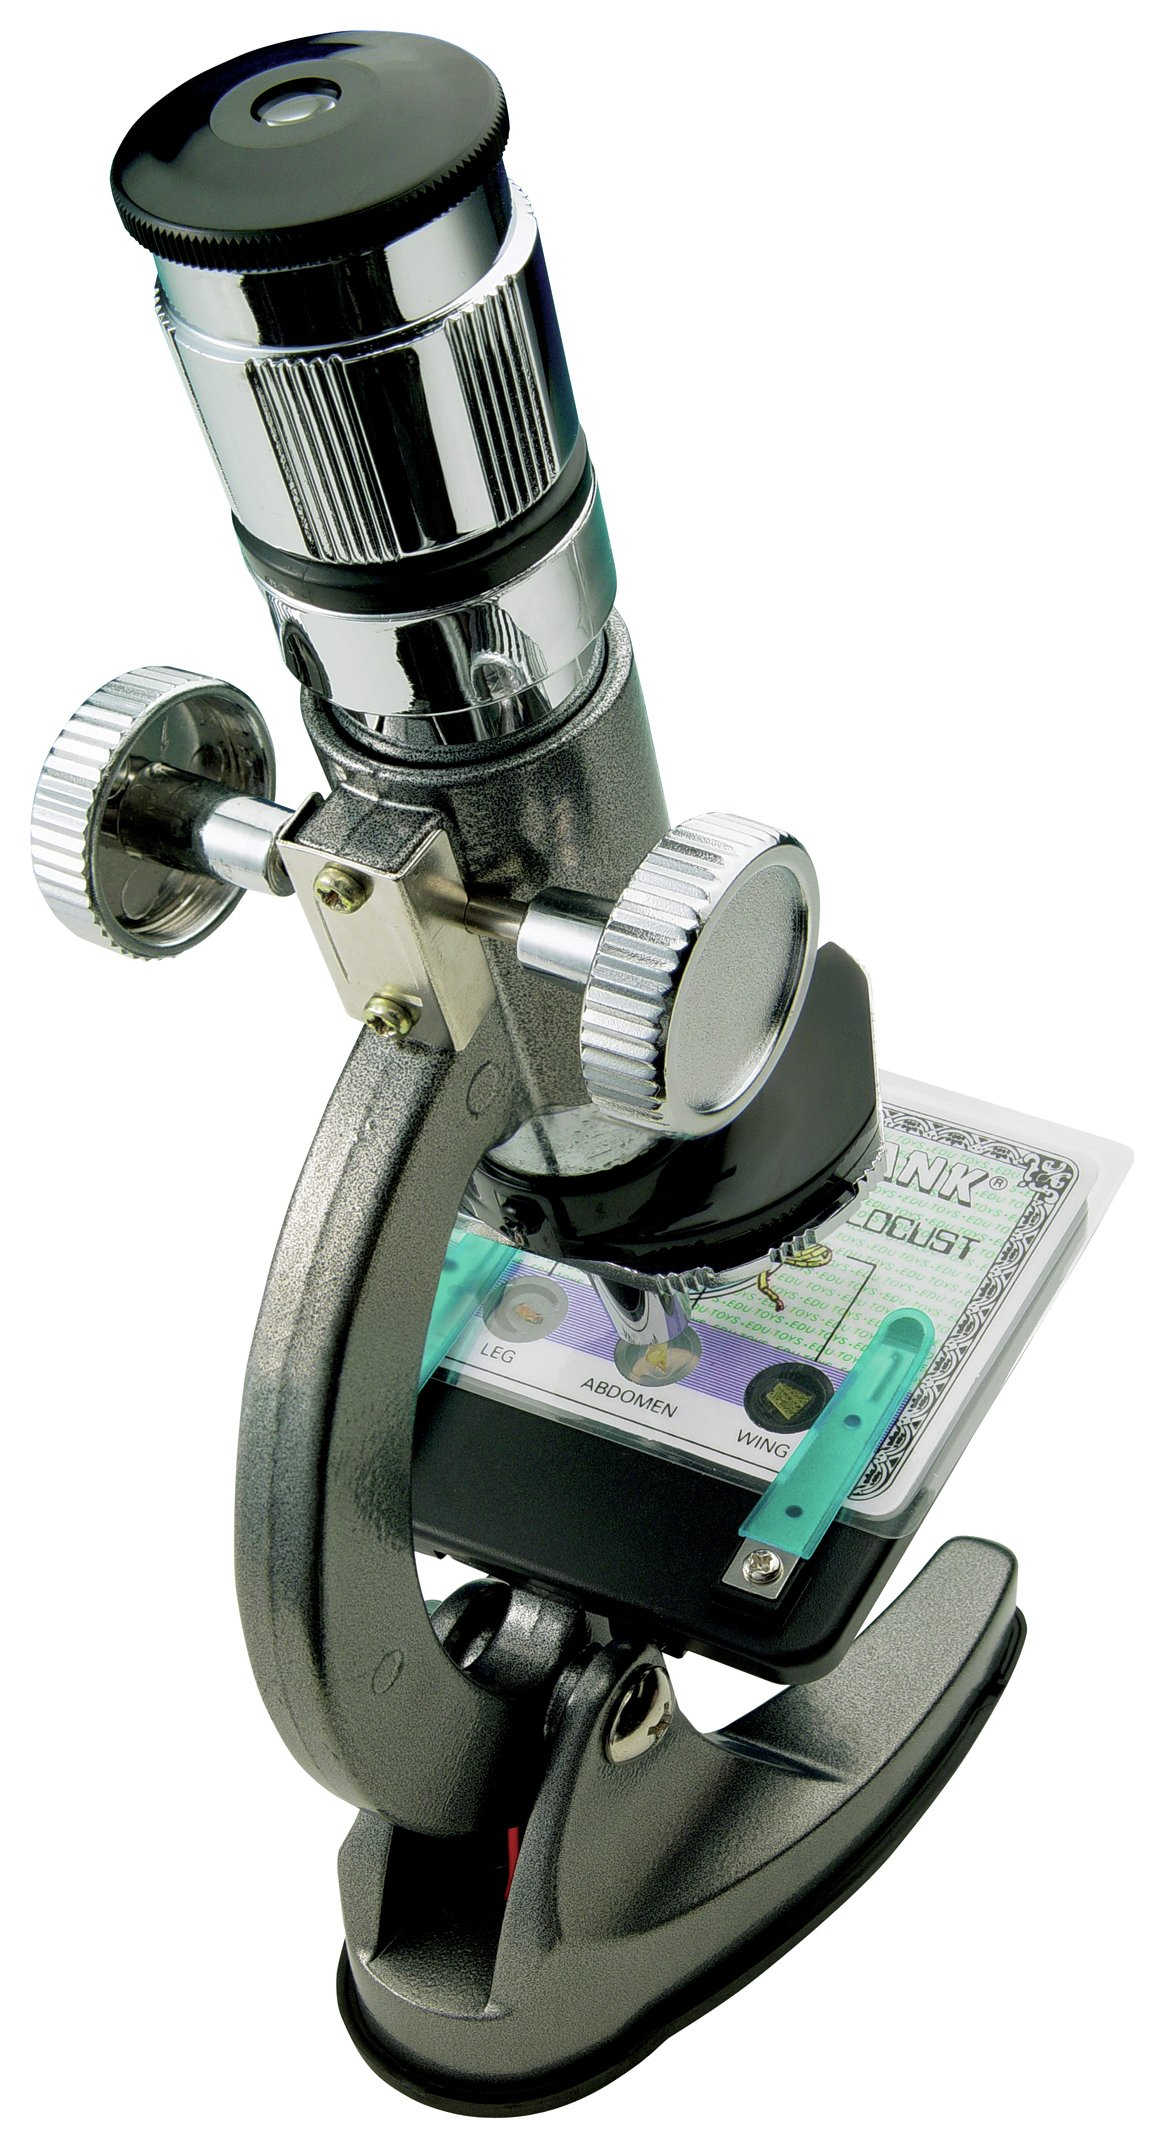 Image of 100x to 900x Zoom Diecast Microscope Set.